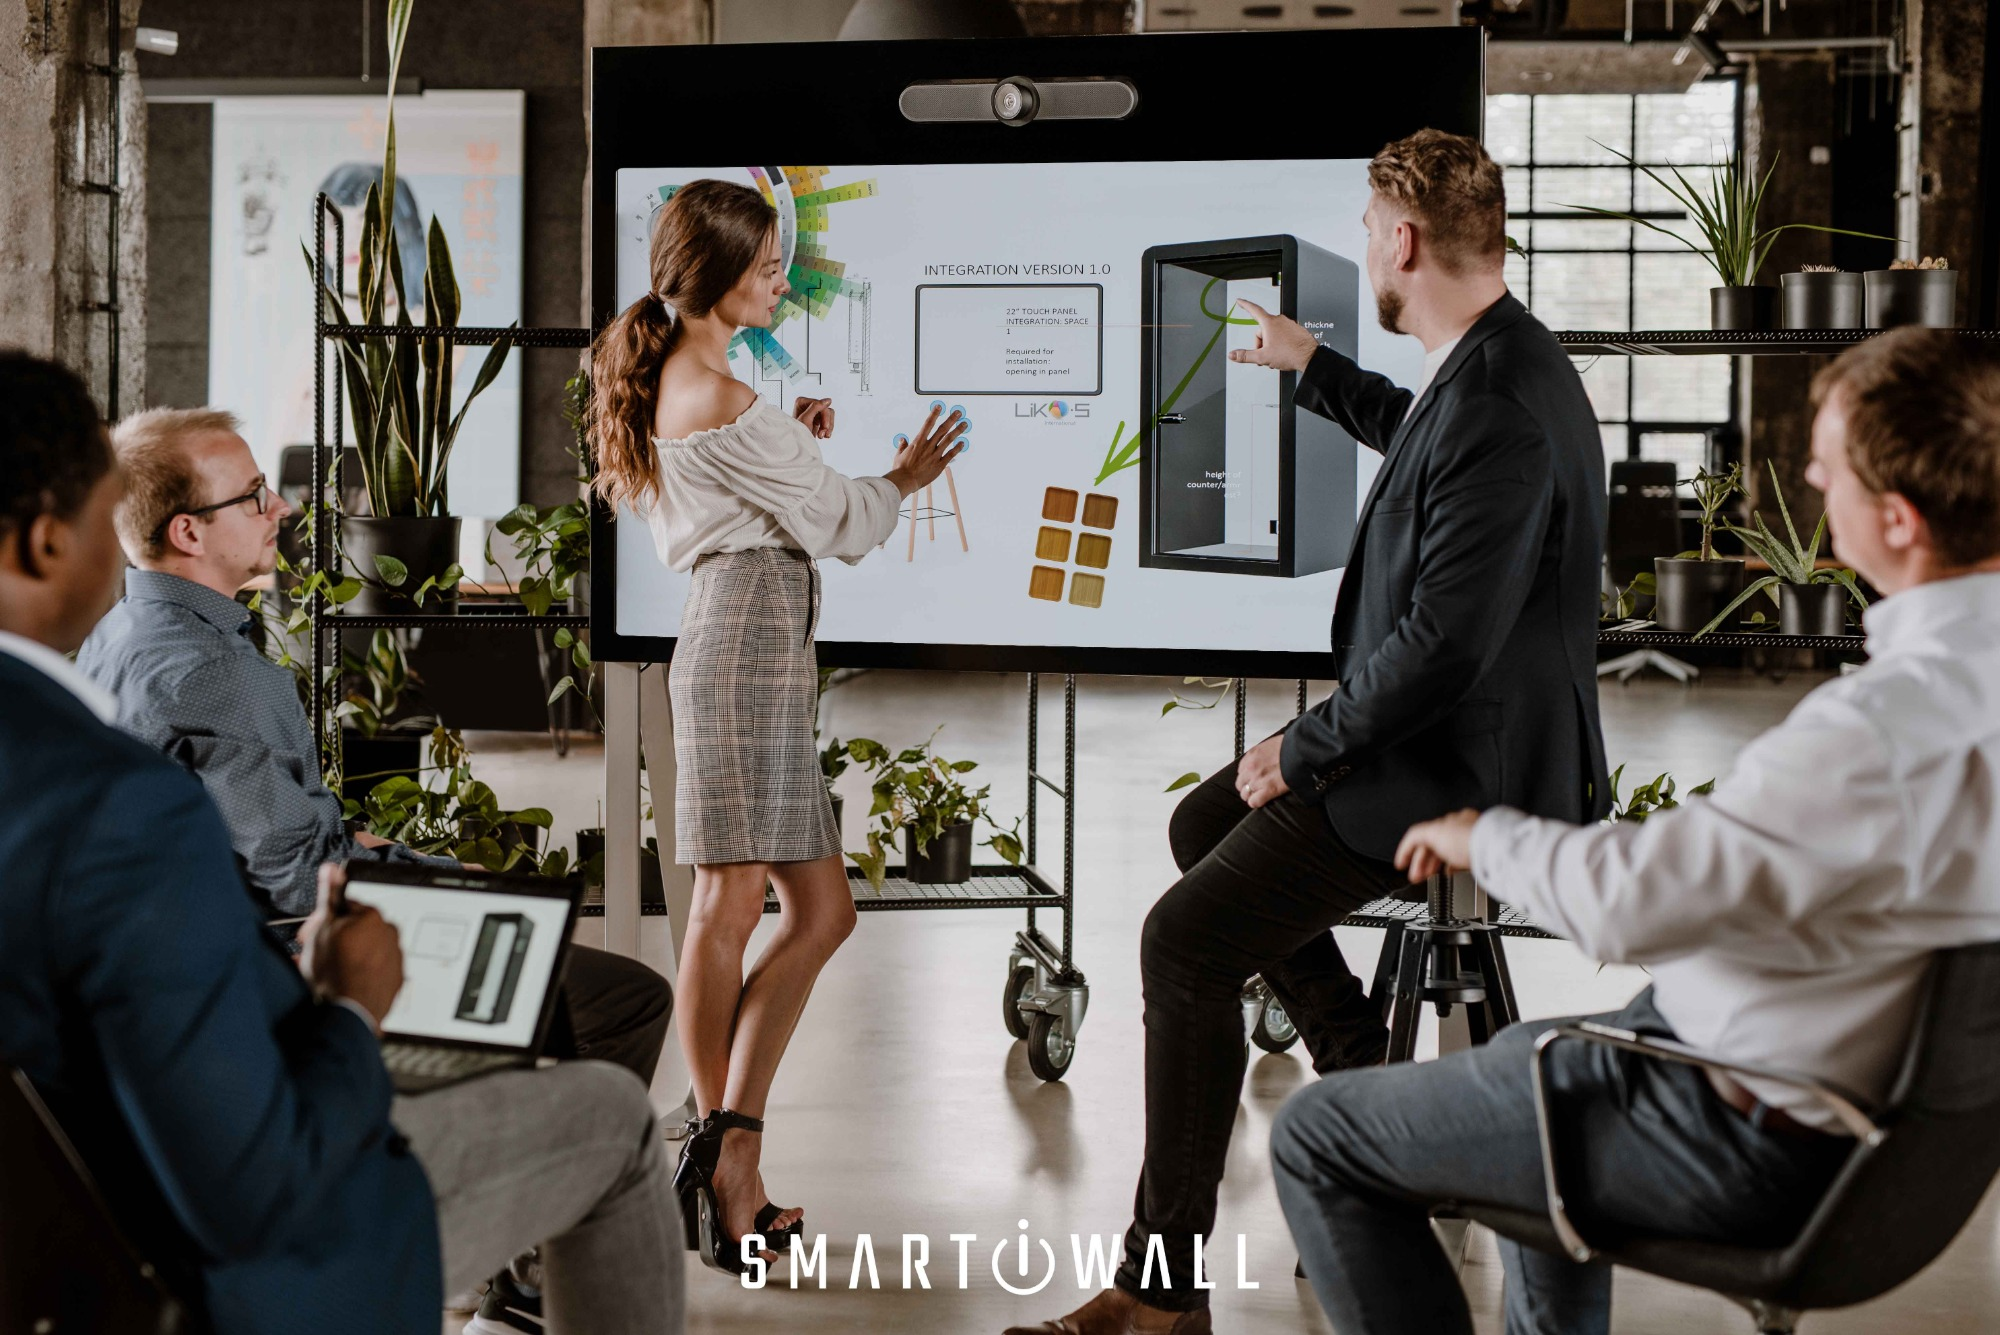 SMART-i-WALL®: Your next video conference will not be via laptop.